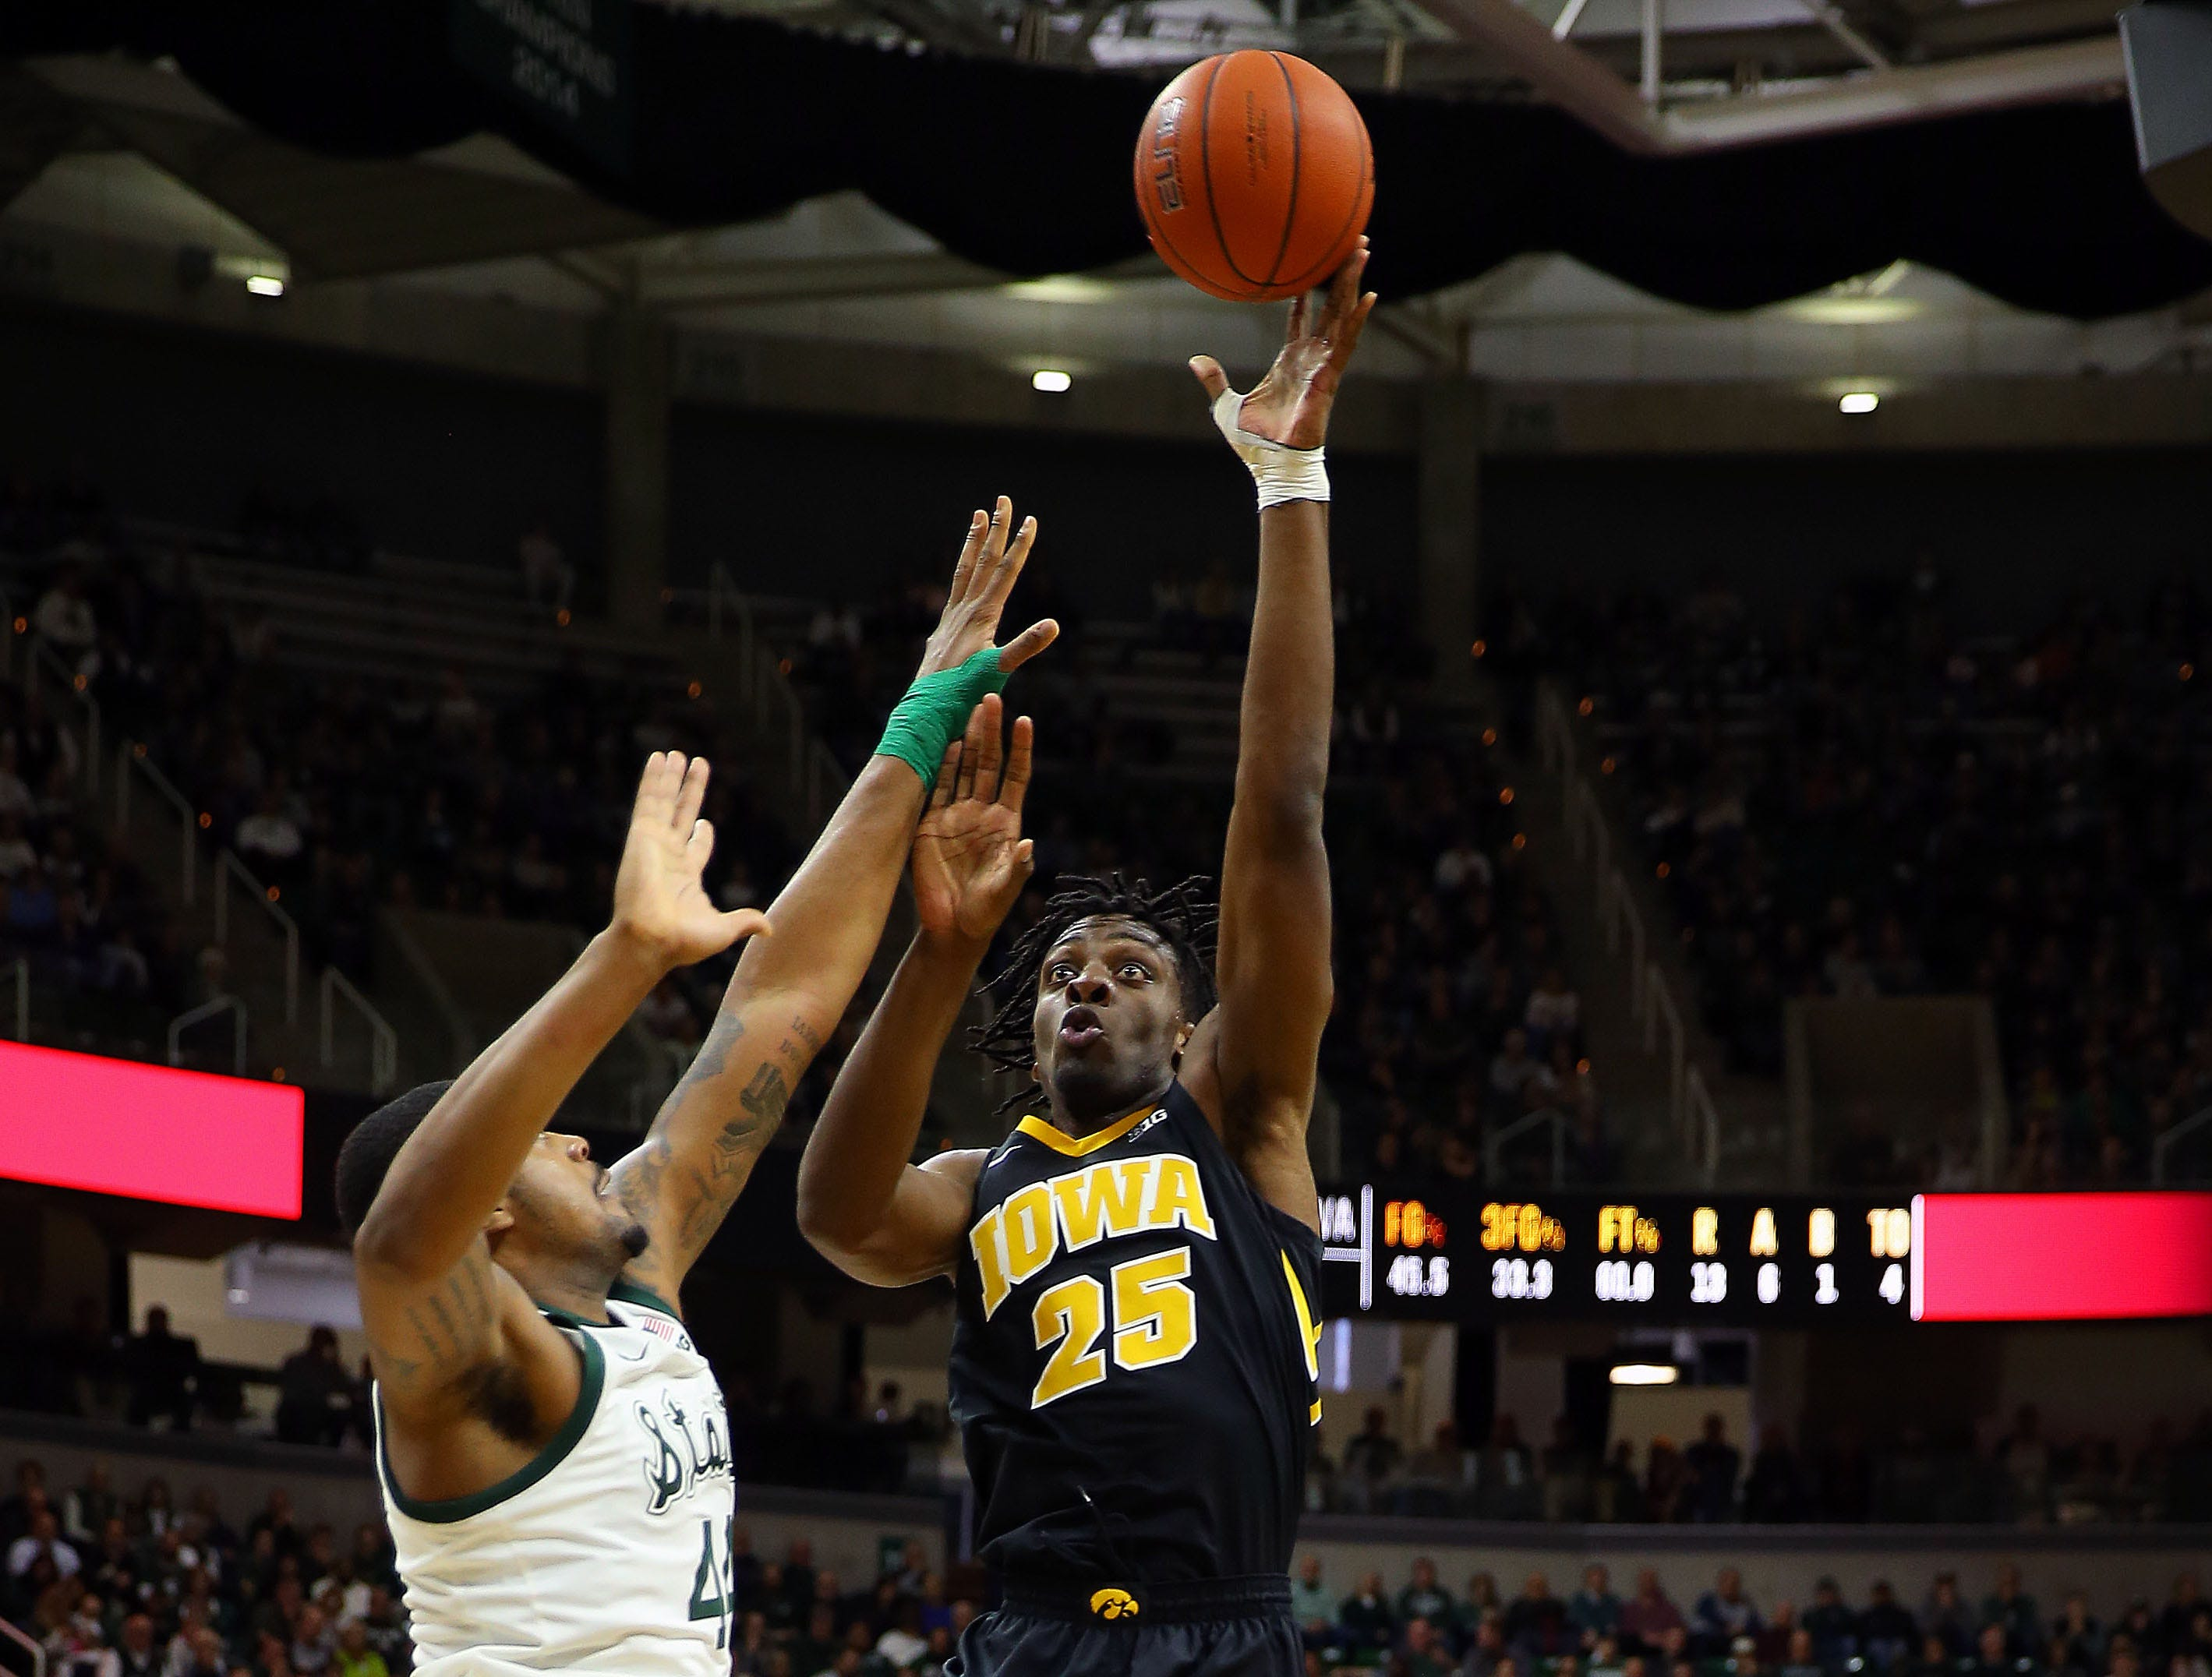 Dec 3, 2018; East Lansing, MI, USA; Iowa Hawkeyes forward Tyler Cook (25) shoots over Michigan State Spartans forward Nick Ward (44) during the first half of a game at Breslin Center. Mandatory Credit: Mike Carter-USA TODAY Sports